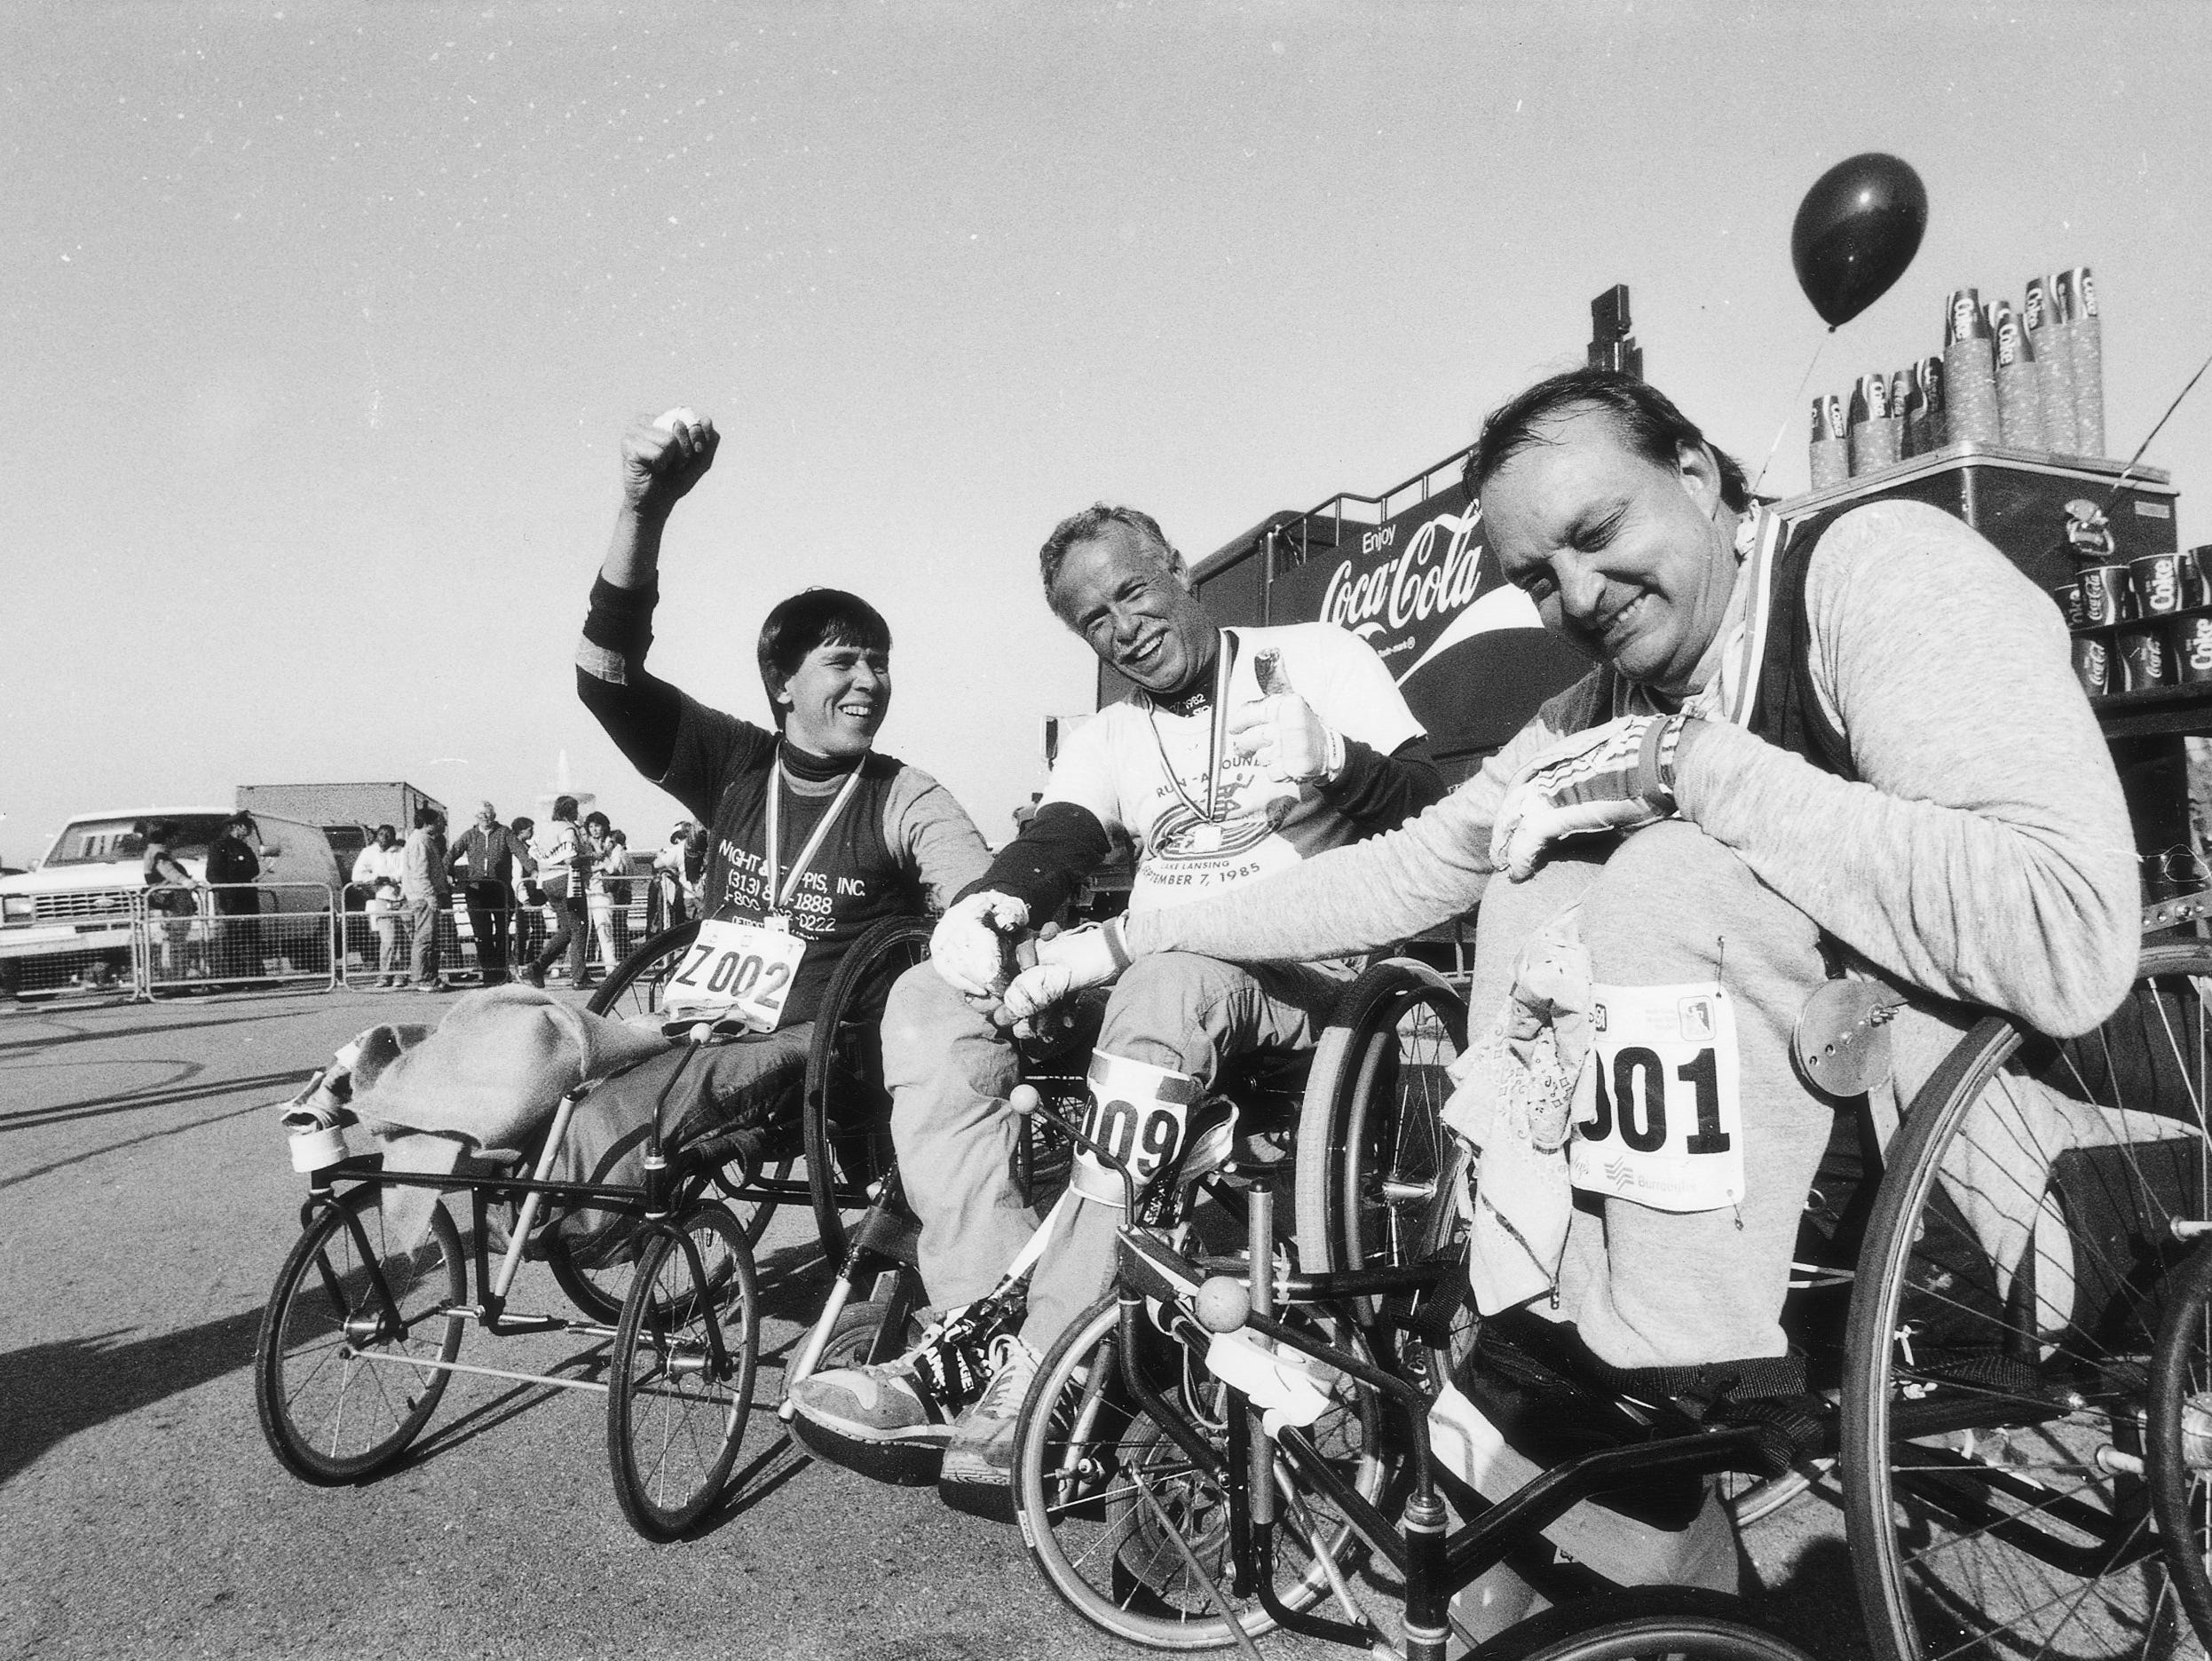 From left, Lou Chernak of Troy, Rich McAvoy of St. Petersburg, Florida and Jim Ford of Linden, celebrate finishing the Free Press Marathon in 1986.